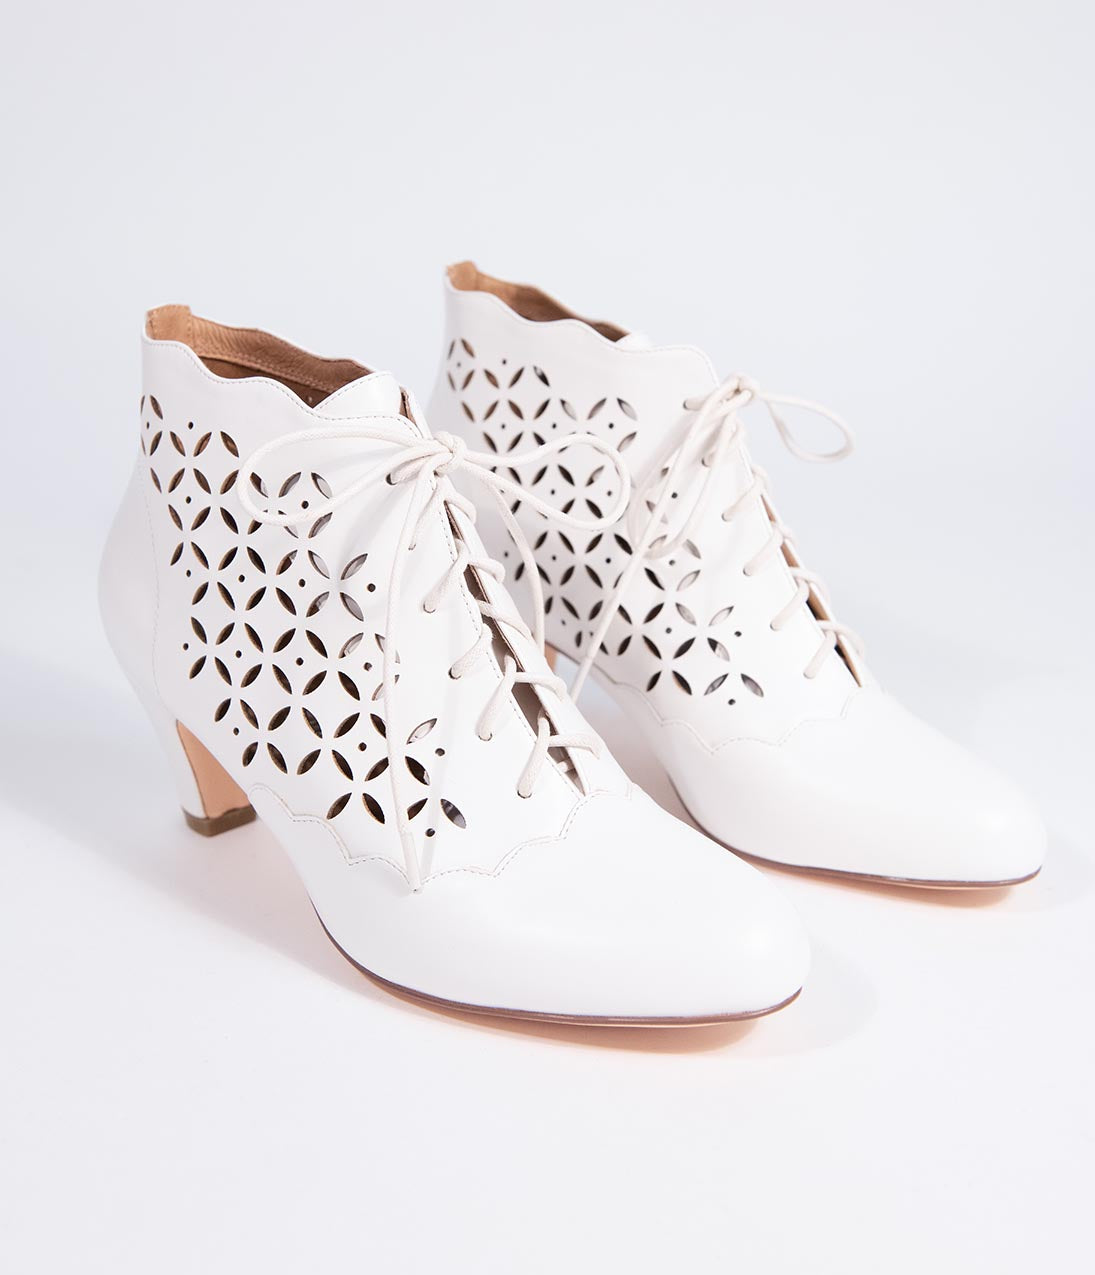 Steampunk Boots & Shoes, Heels & Flats Chelsea Crew White Leatherette Lace Up Cutout Illusion Booties $82.00 AT vintagedancer.com